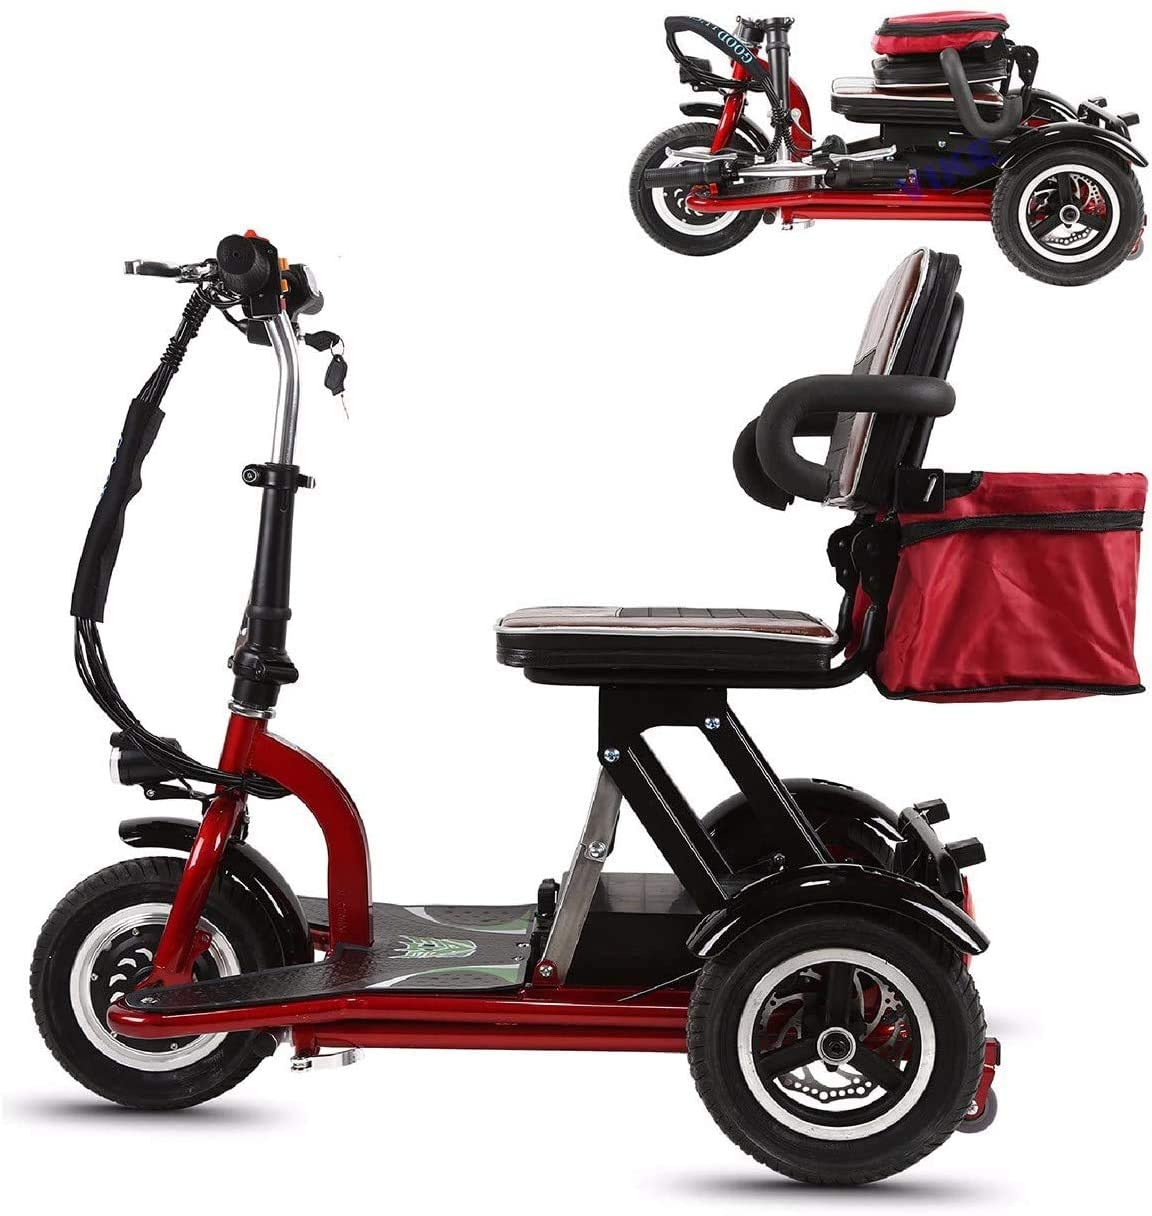 Qfzfei Folding Mobility Scooters,3 Wheeled Electric Mobility Scooter 300W Motor, 20km/H, 3 Speed Adjustment,Suitable For the Elderly, the Disabled, Adults (Size : 30KM)